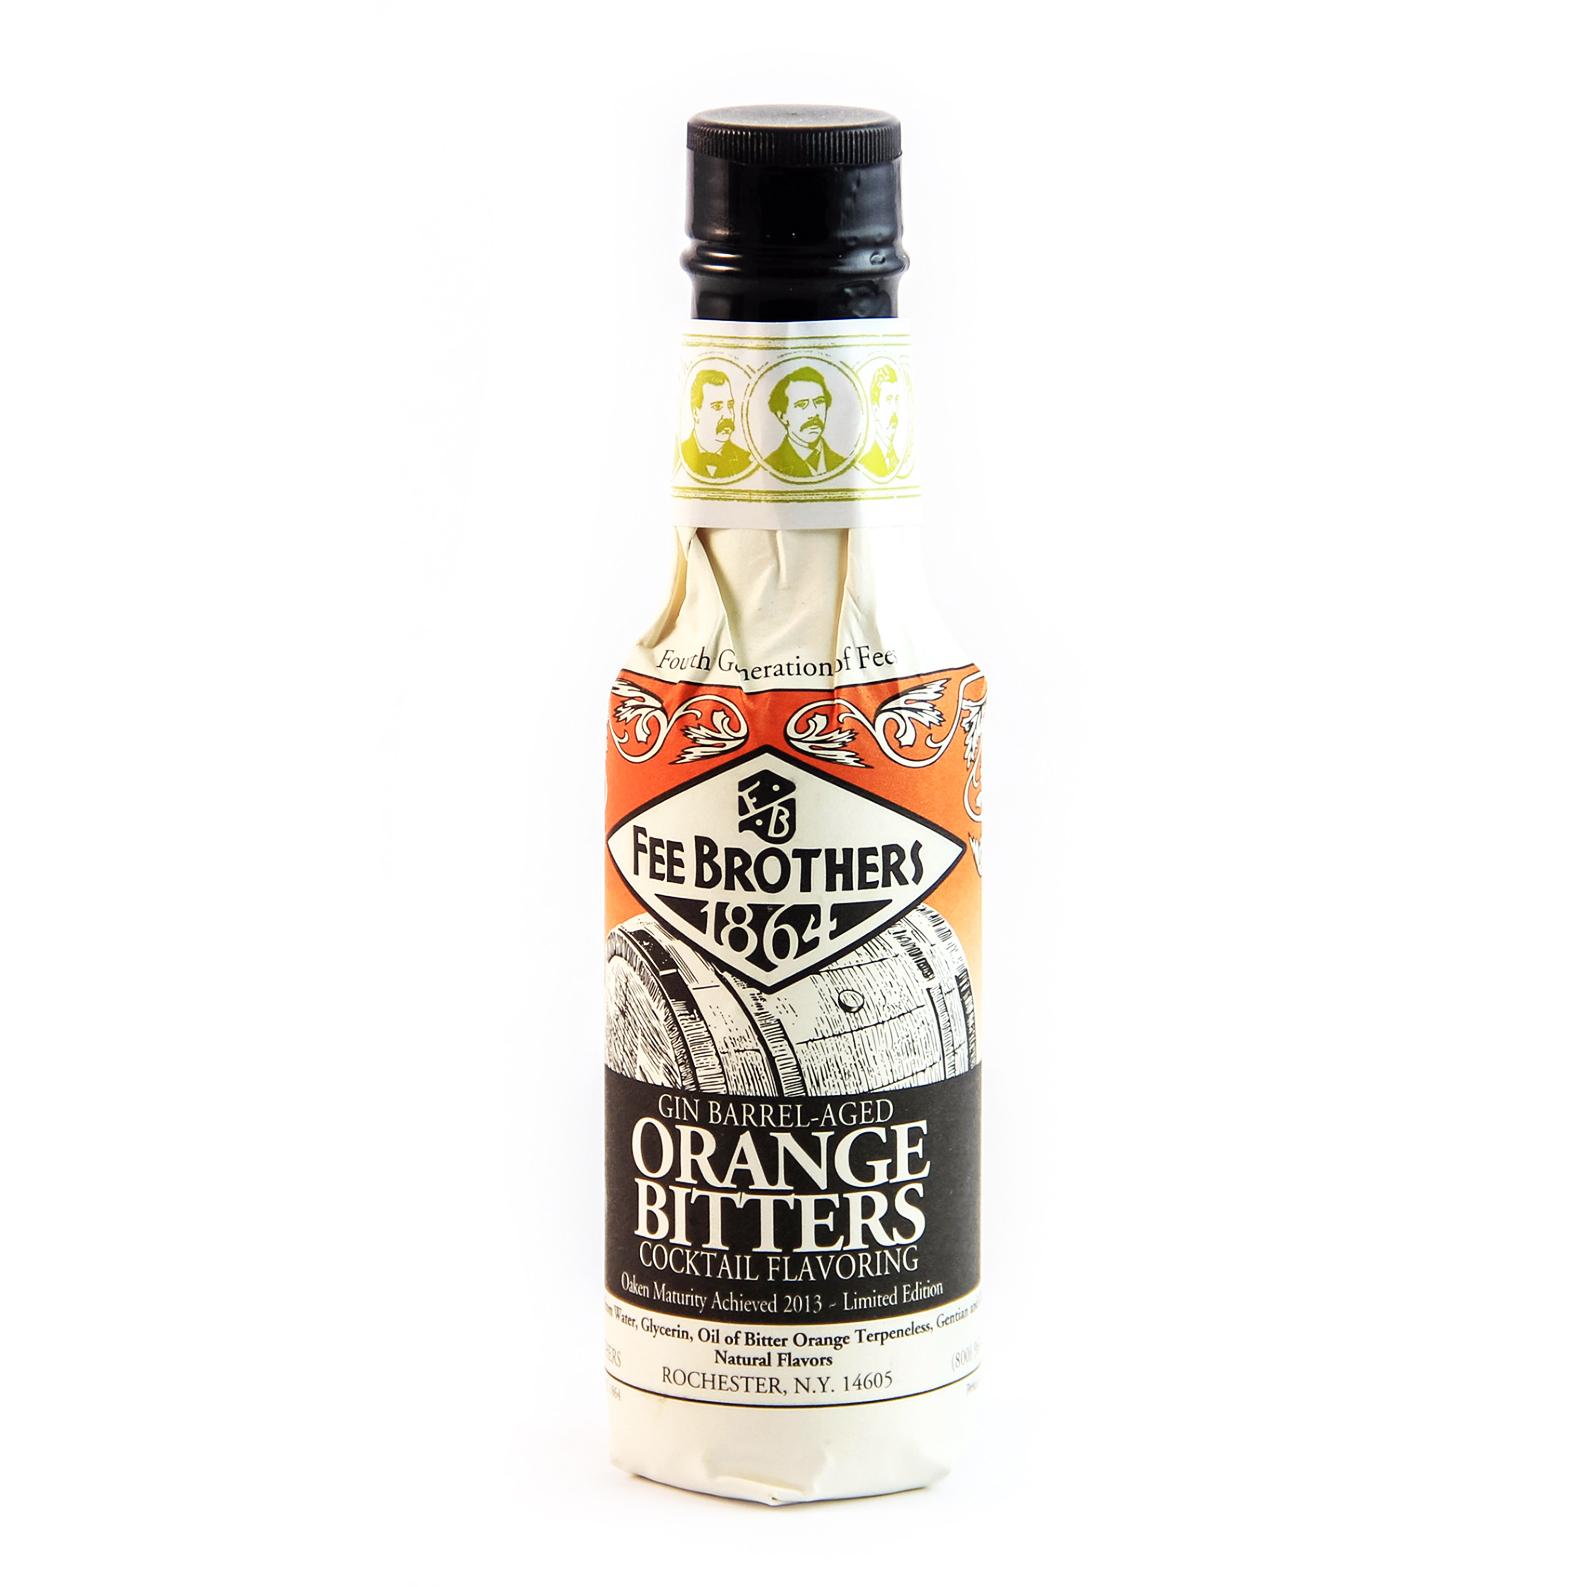 Fee Brothers 1864 Gin Barrel Aged Orange Bitters - Bitter Aromatico - 15cl - Fee Brothers